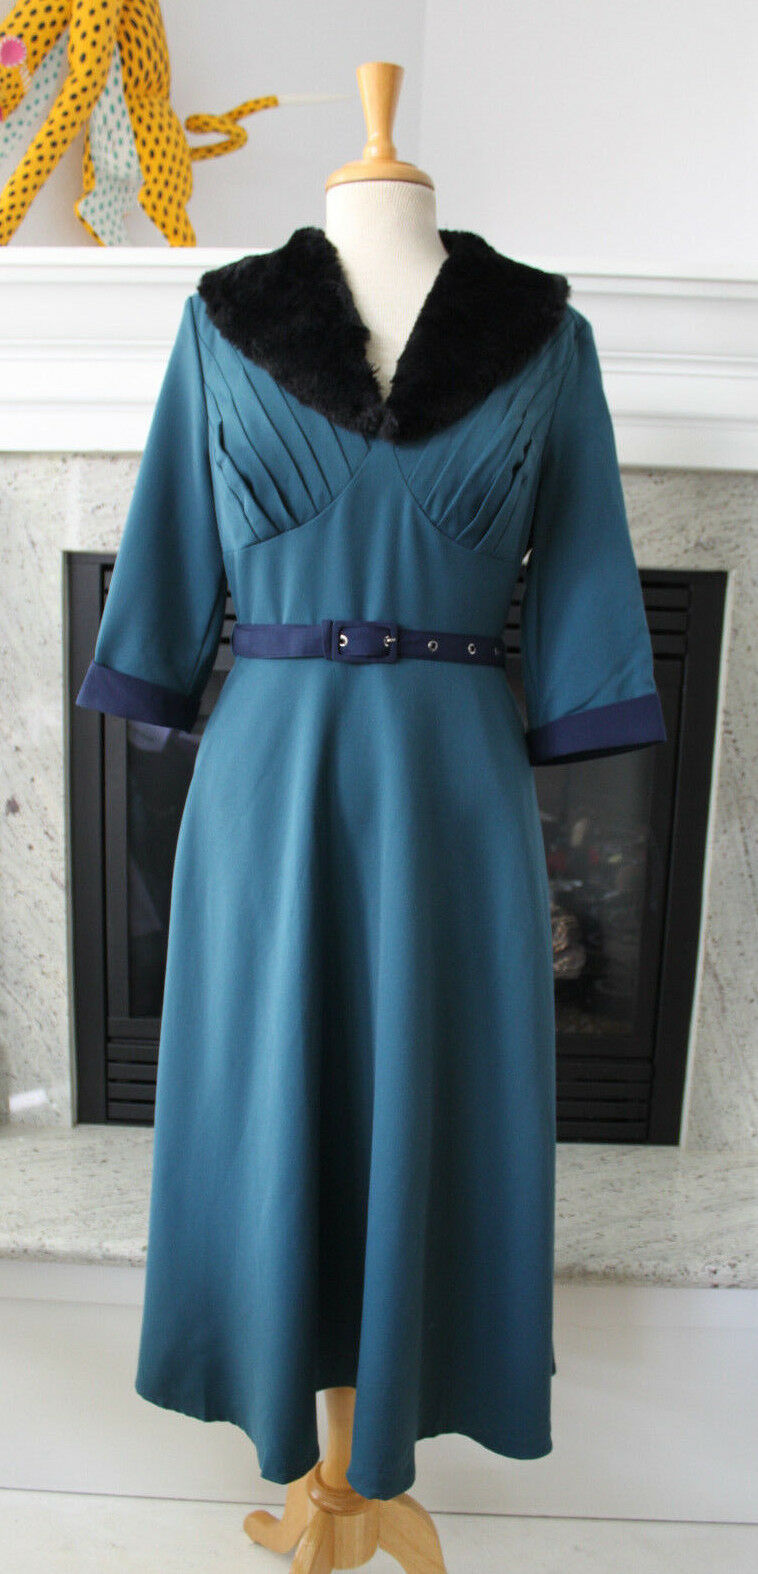 VOODOO VIXEN NWT bluee Retro 40's Glam Vintage Fit Flare Fur Collar Midi Dress 8